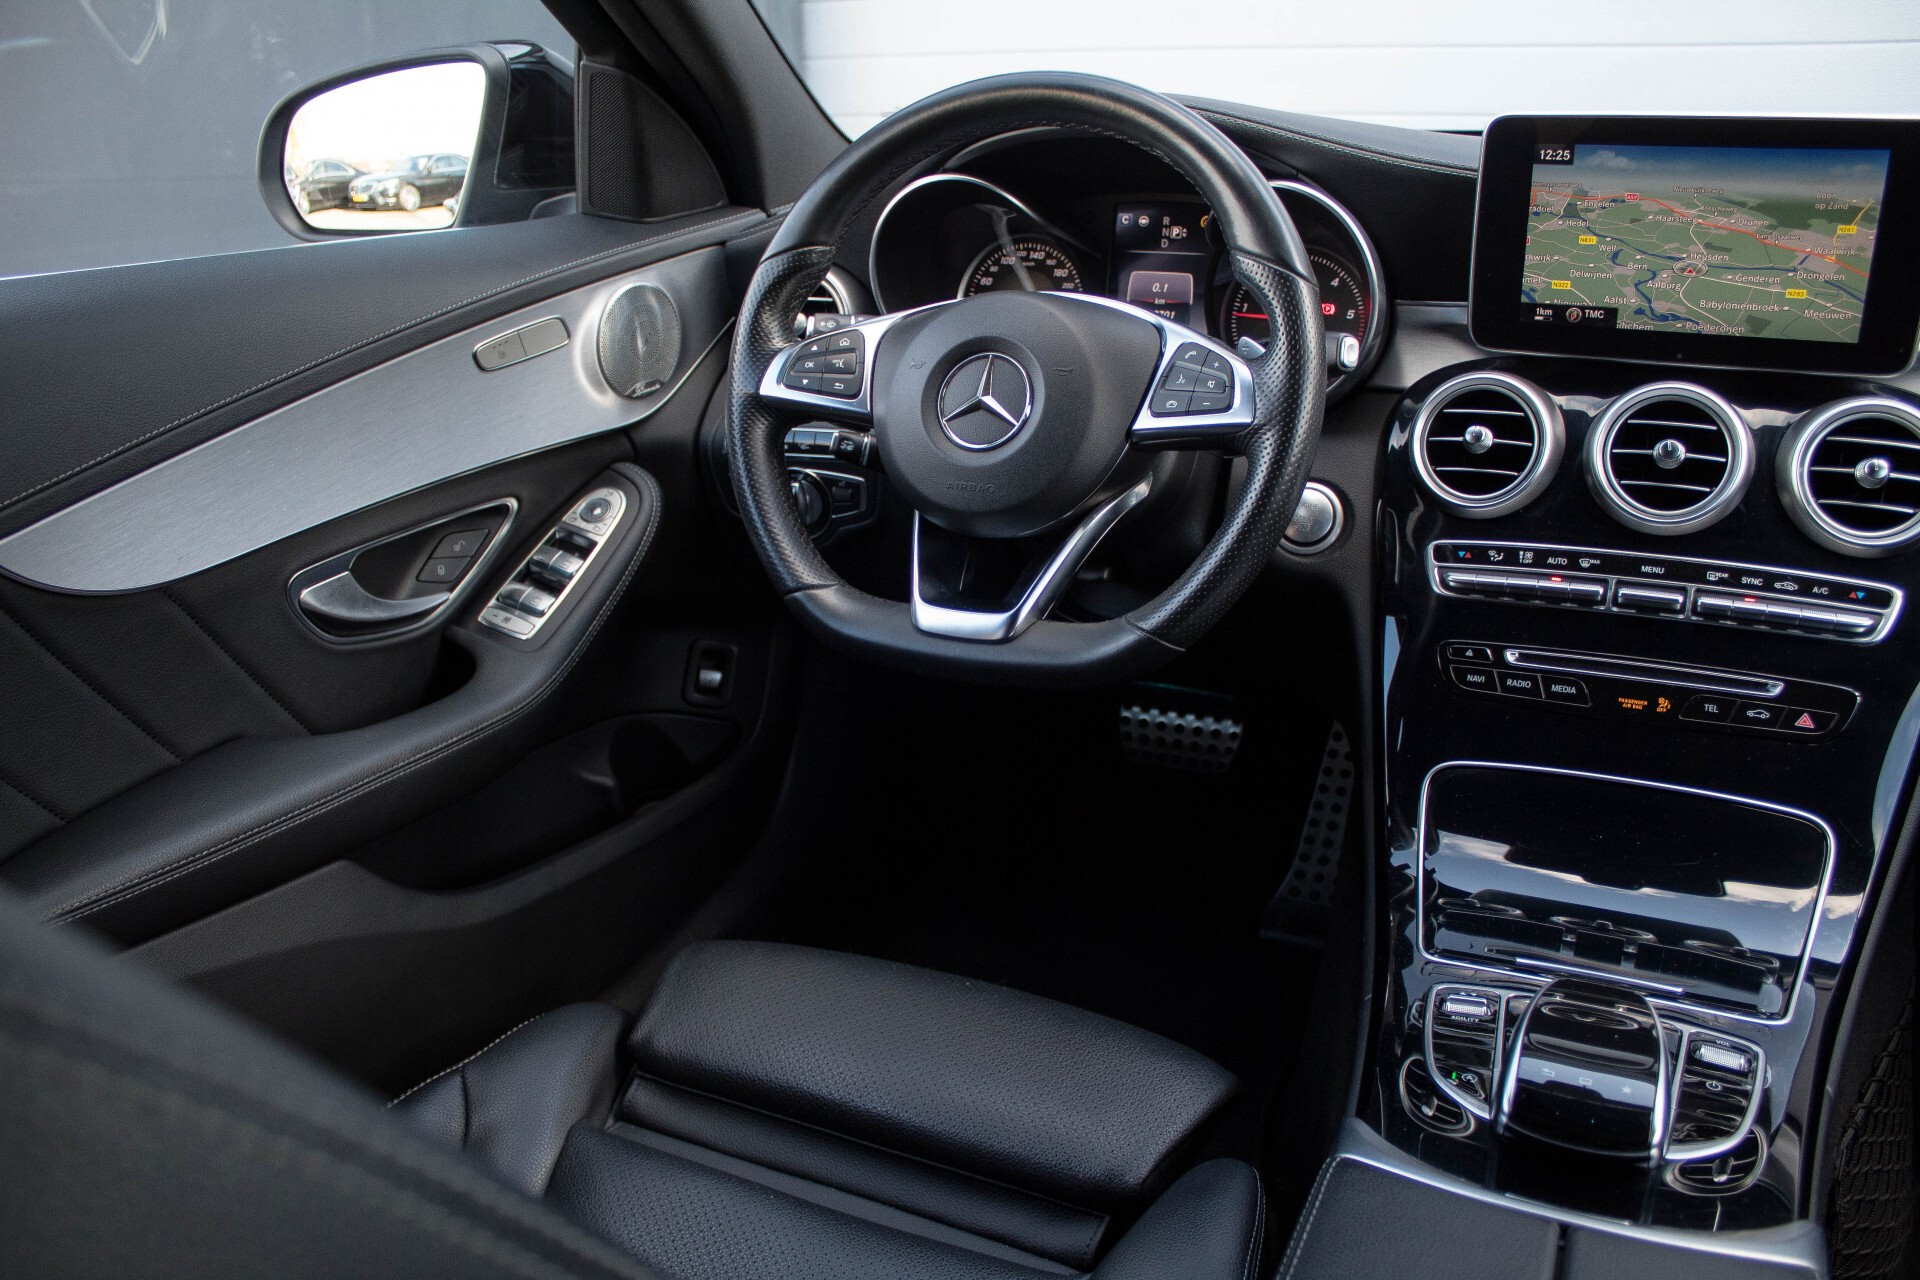 Mercedes-Benz C-Klasse Estate 250 Bluetec AMG Distronic/Pano/Keyless/Head-Up/Burmester/Comand Aut7 Foto 6